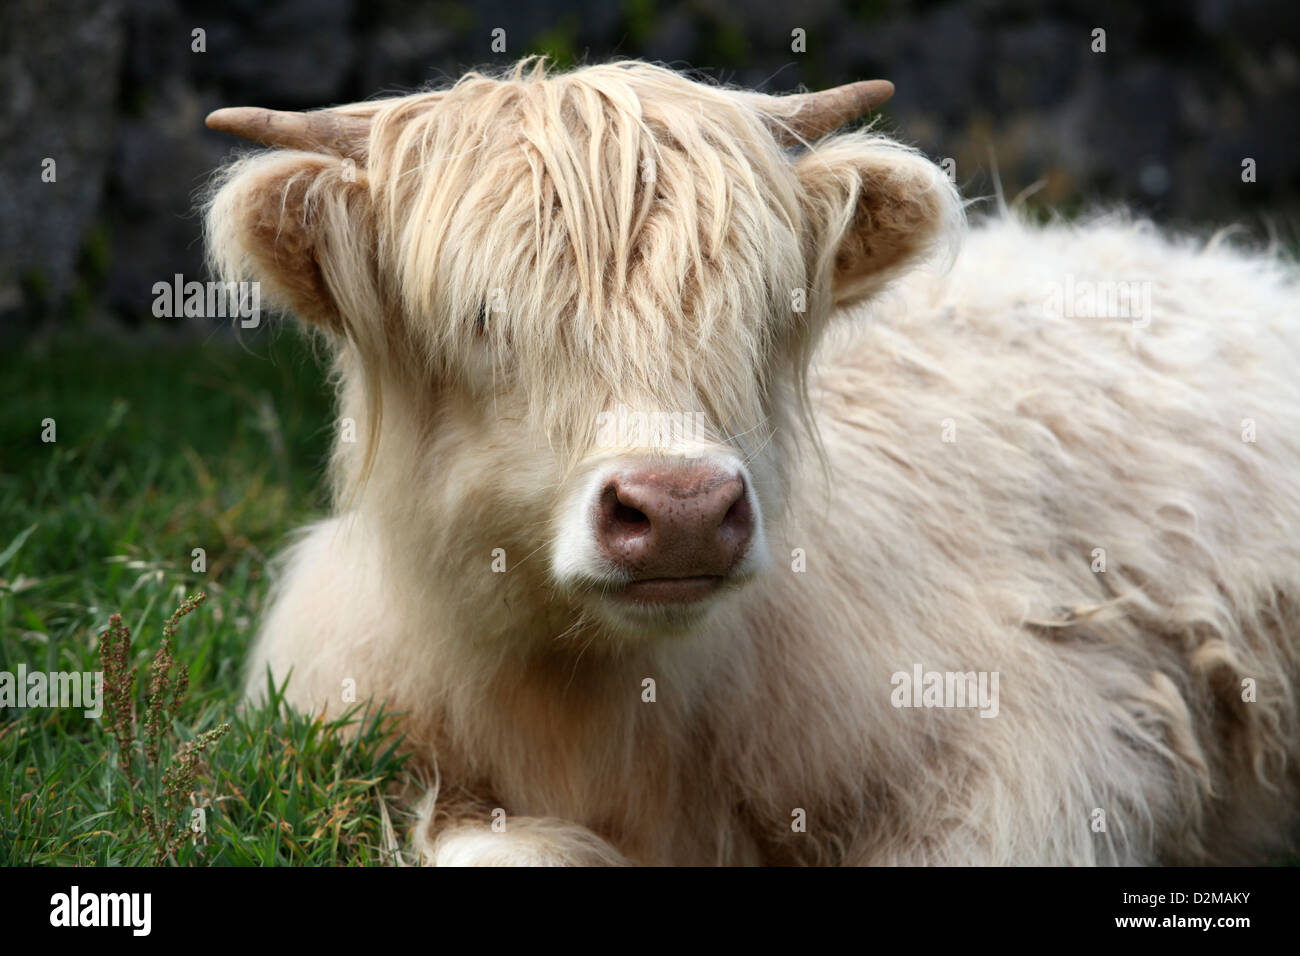 A very tousled Cream coloured Highland Cow - Stock Image